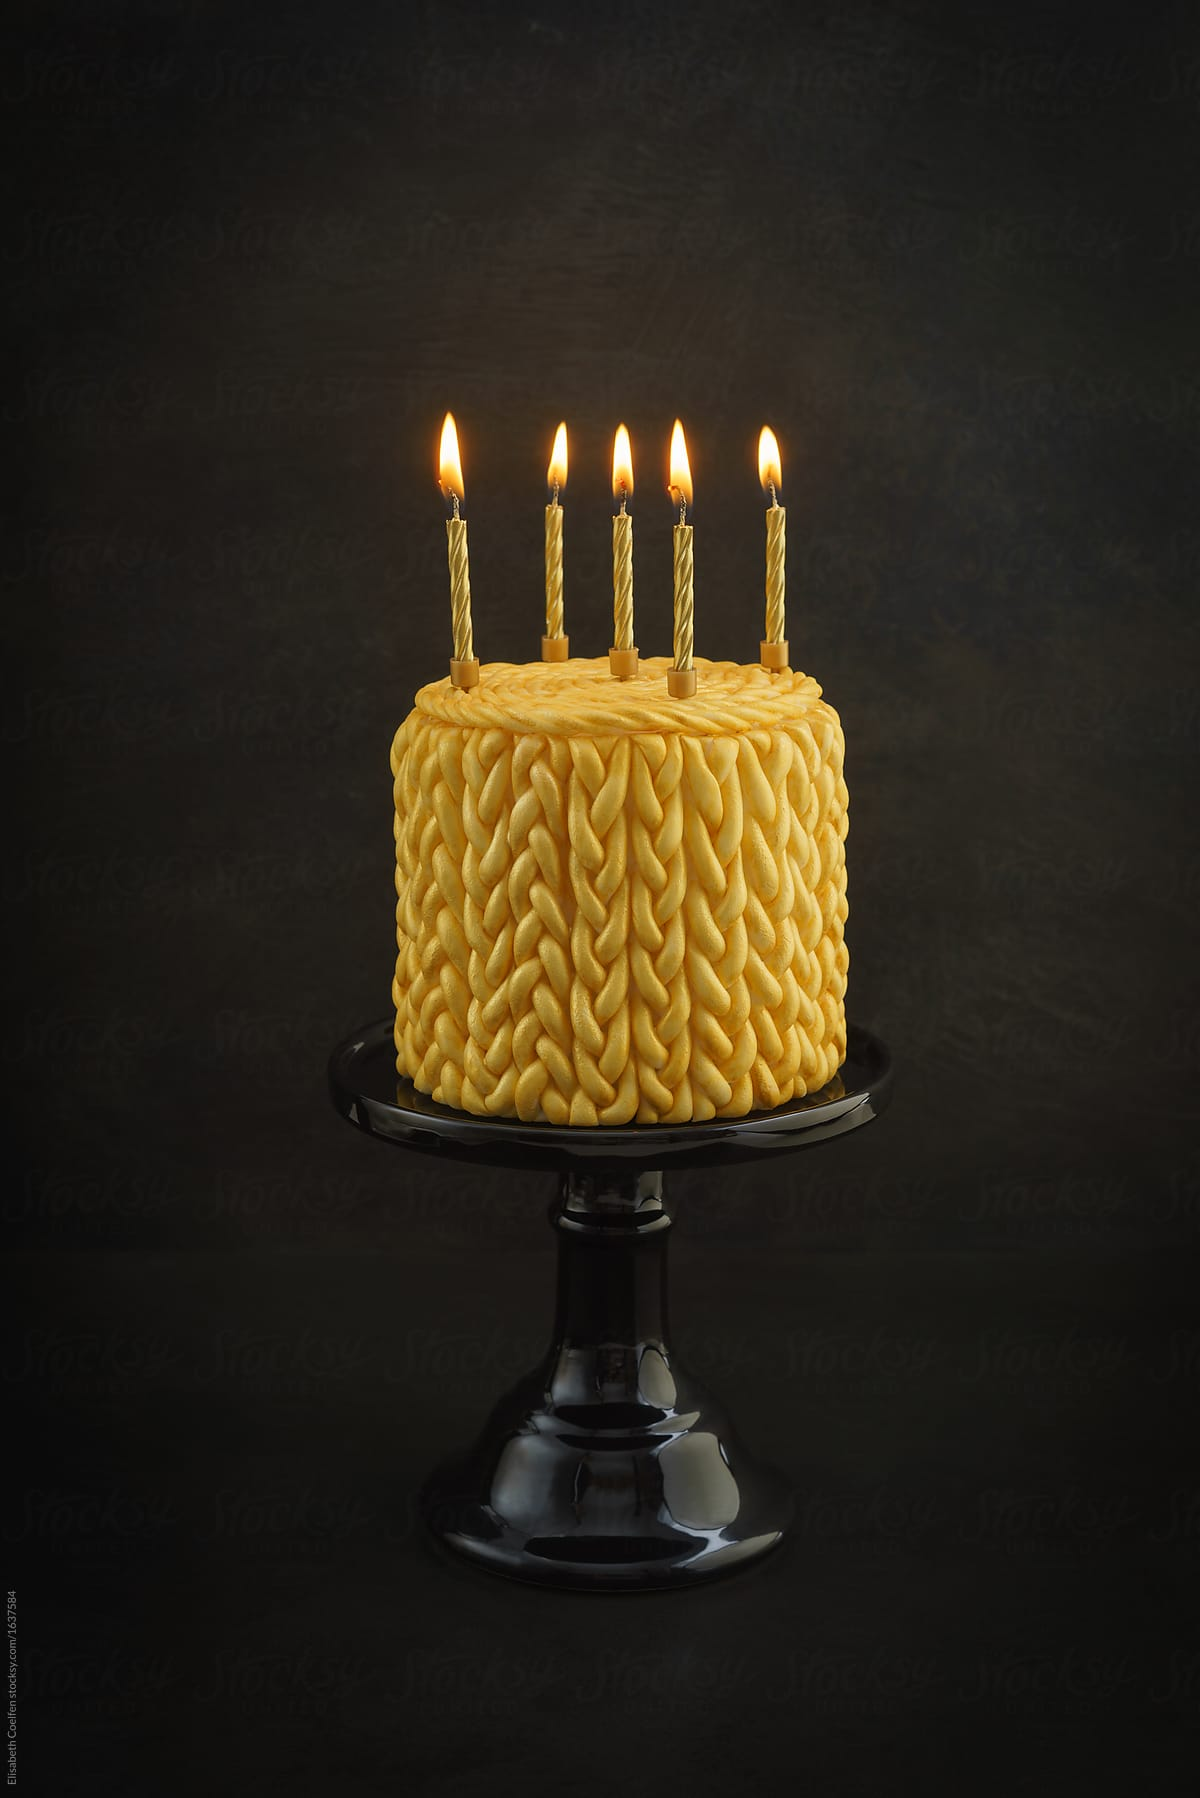 Pleasant Golden Birthday Cake With Knitted Pattern Made Of Fondant And Ca Personalised Birthday Cards Veneteletsinfo